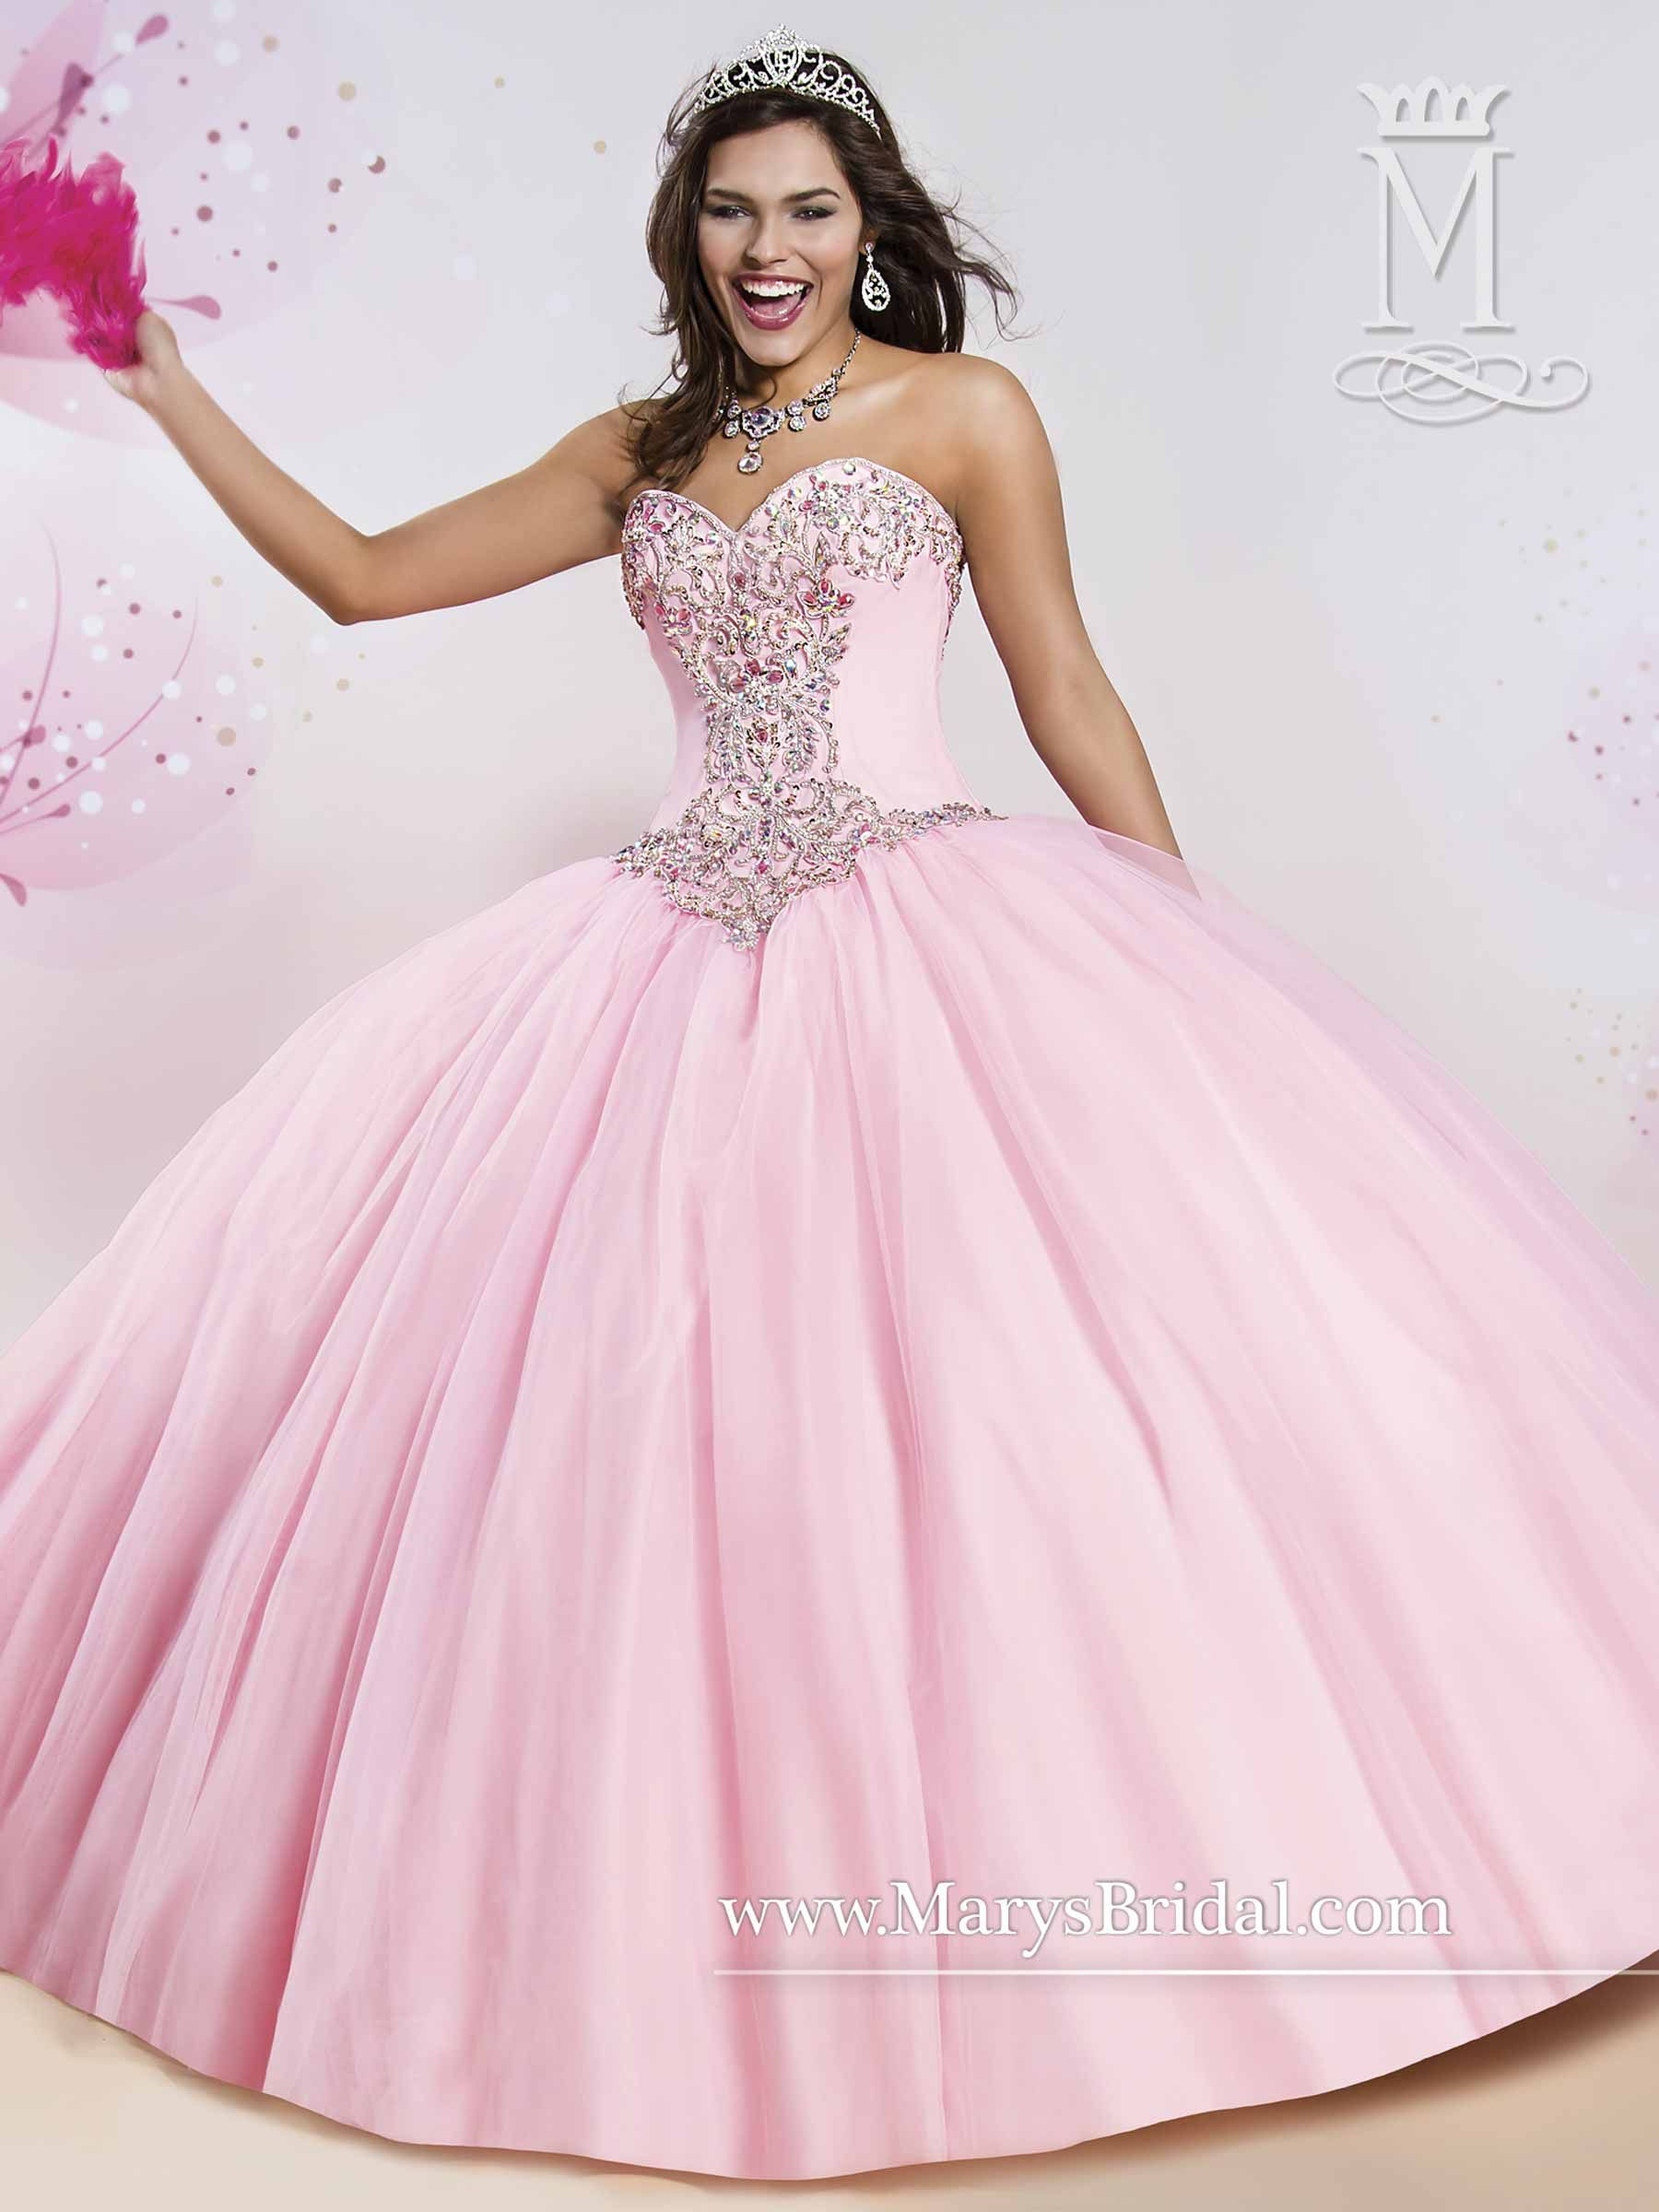 6efe42270 Mary s Bridal pink quinceañera dress